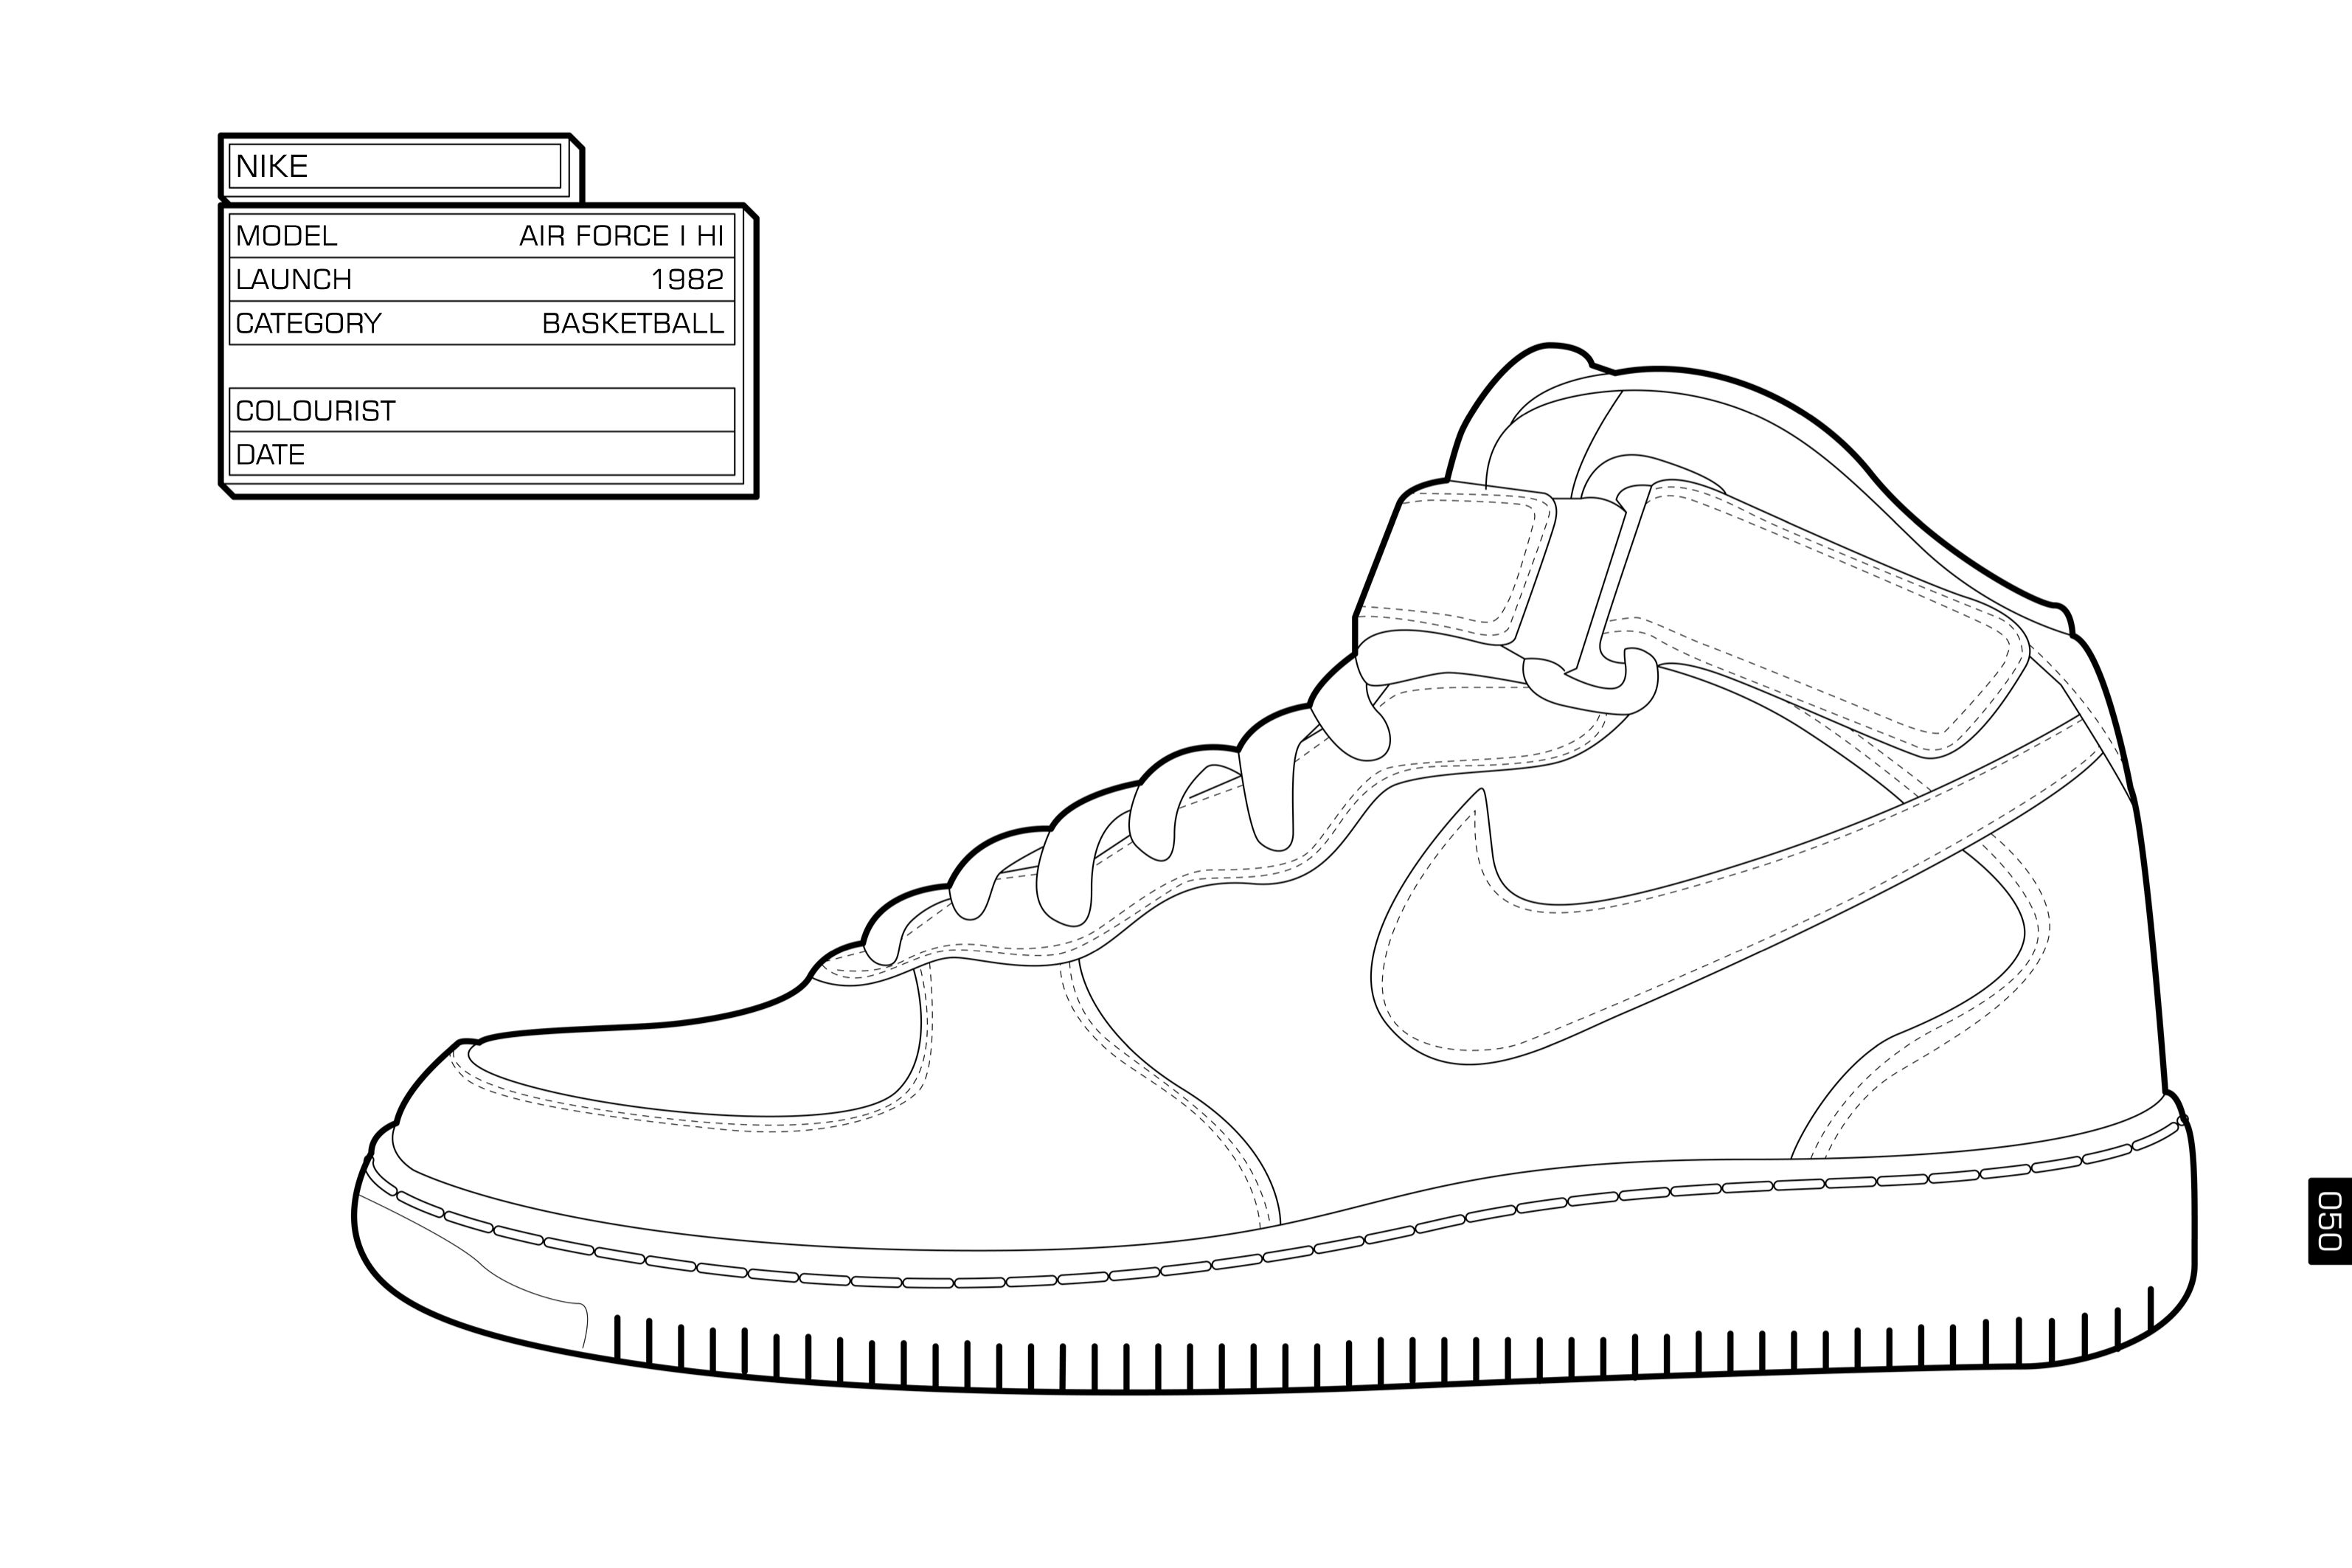 Coloring pages for jordans - Nike Coloring Pages Shoes For Kids And All Ages